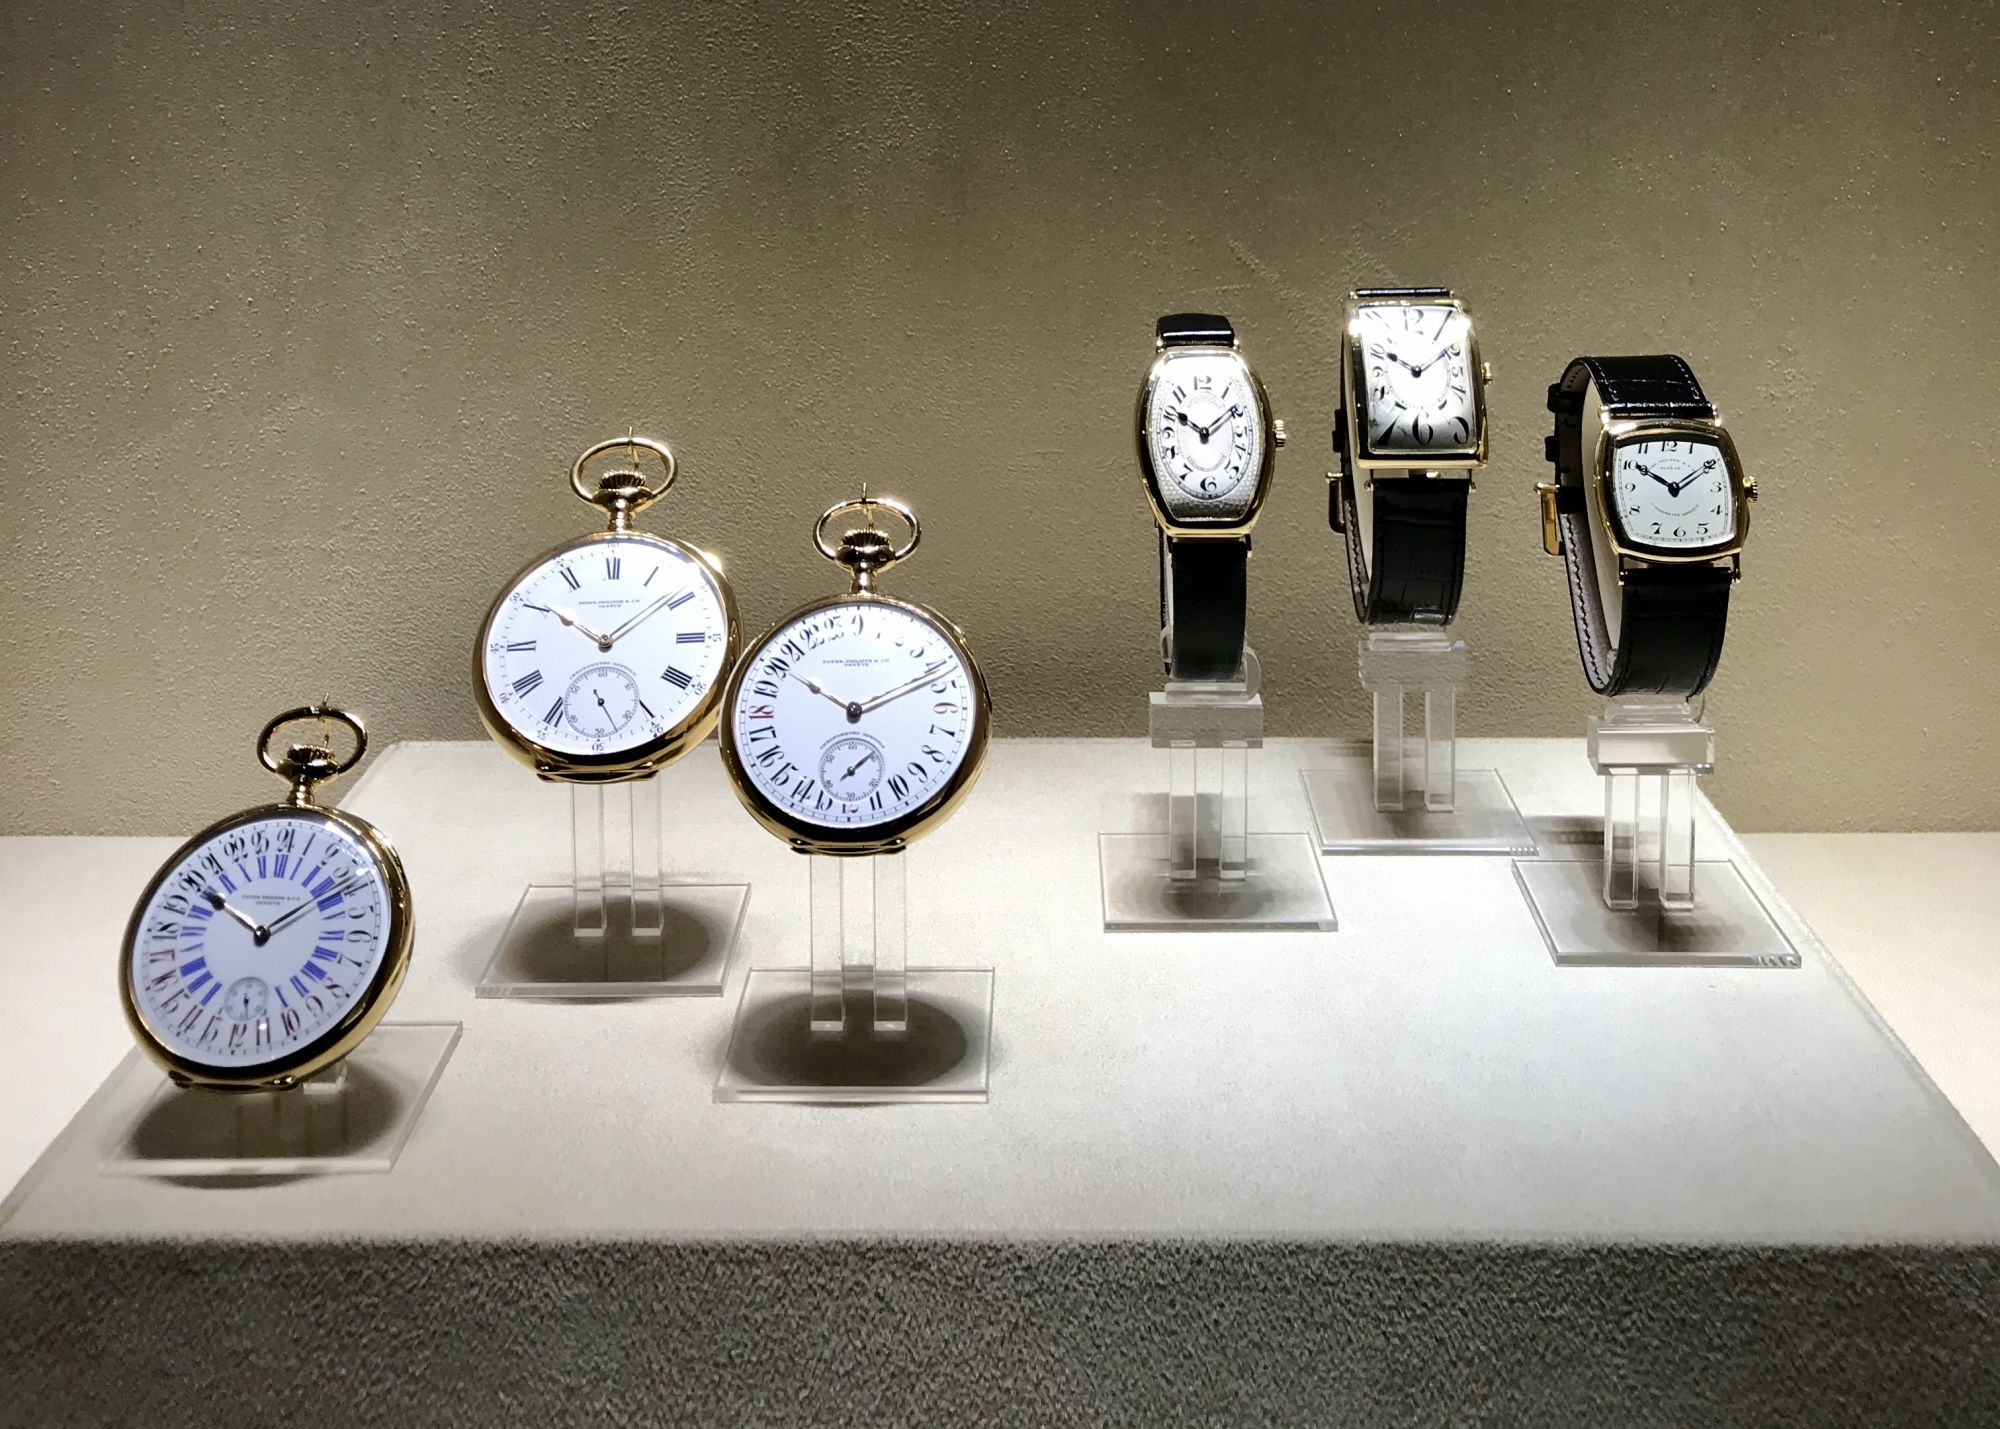 5 Things To Expect At Patek Philippe's Watch Art Grand Exhibition Singapore 2019